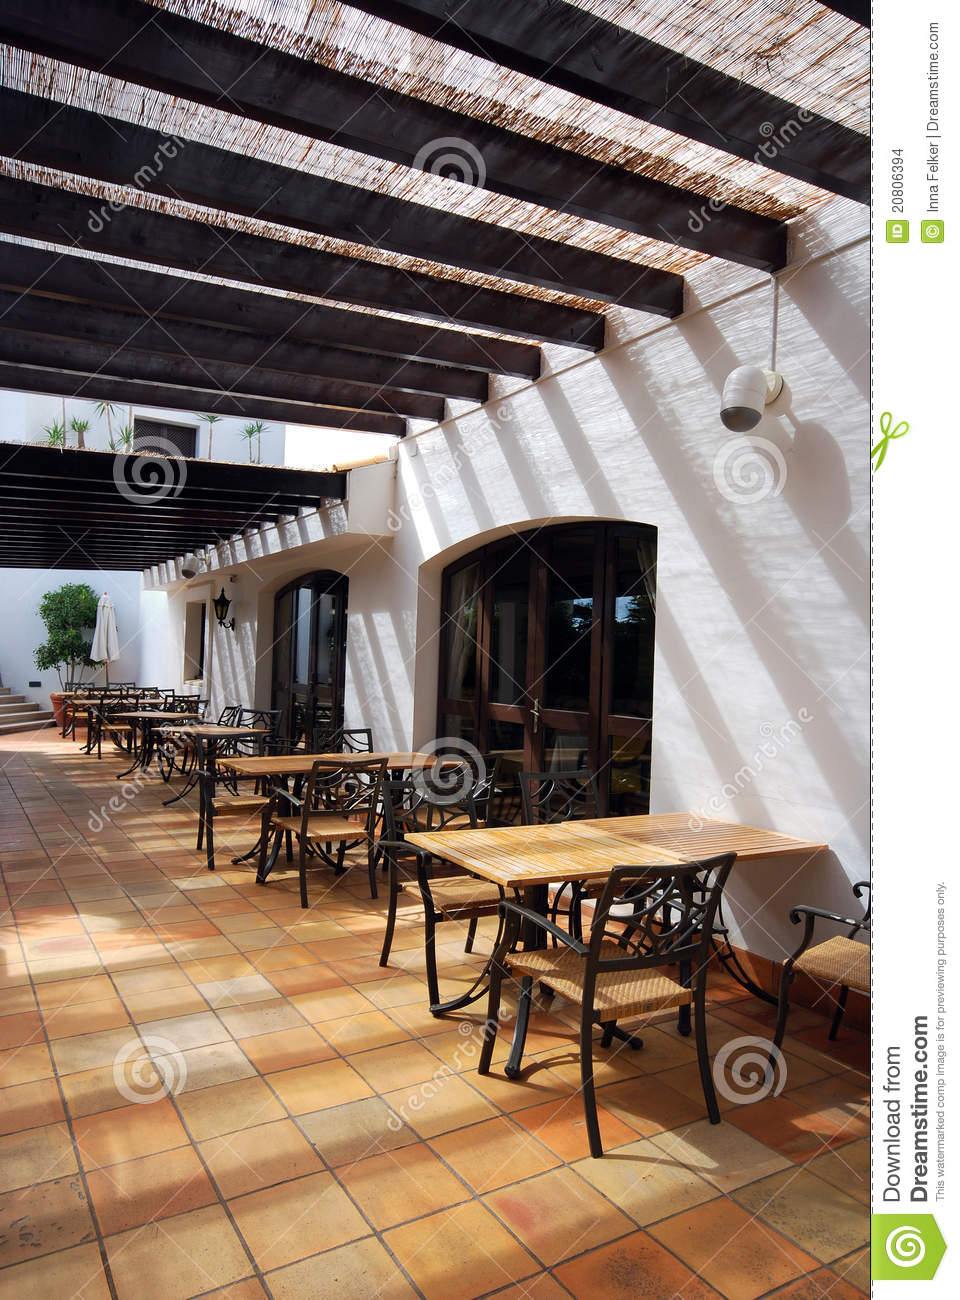 Open terrace cafe in mediterranean town stock images